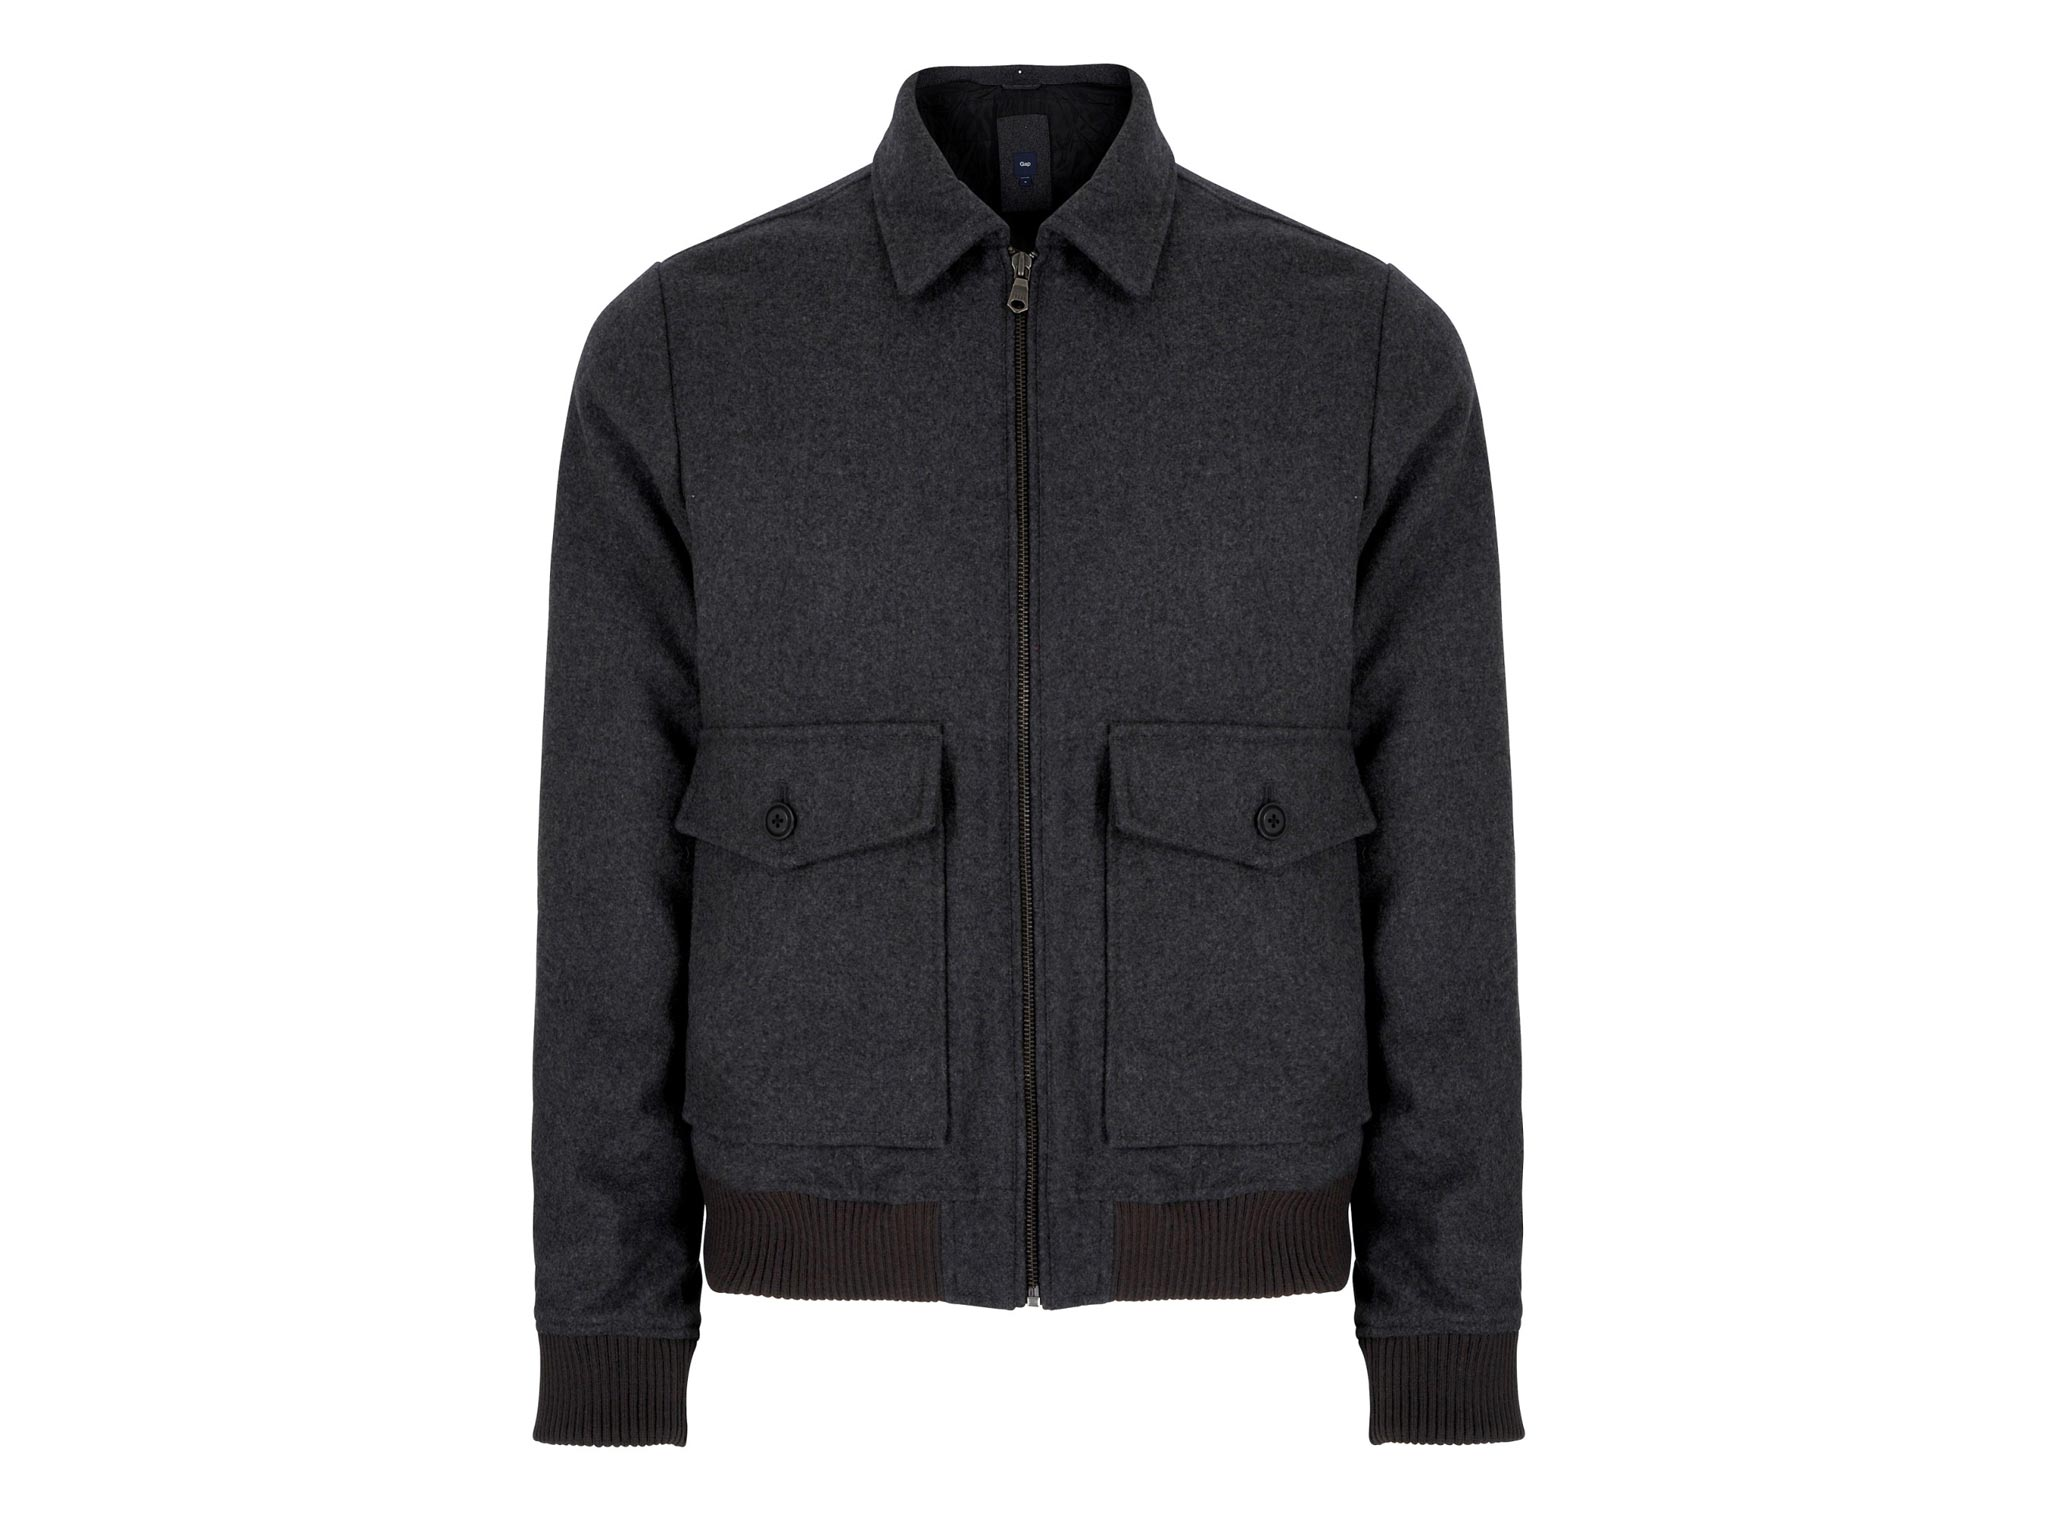 5cca62efc8 The 50 Best coats and jackets | The Independent